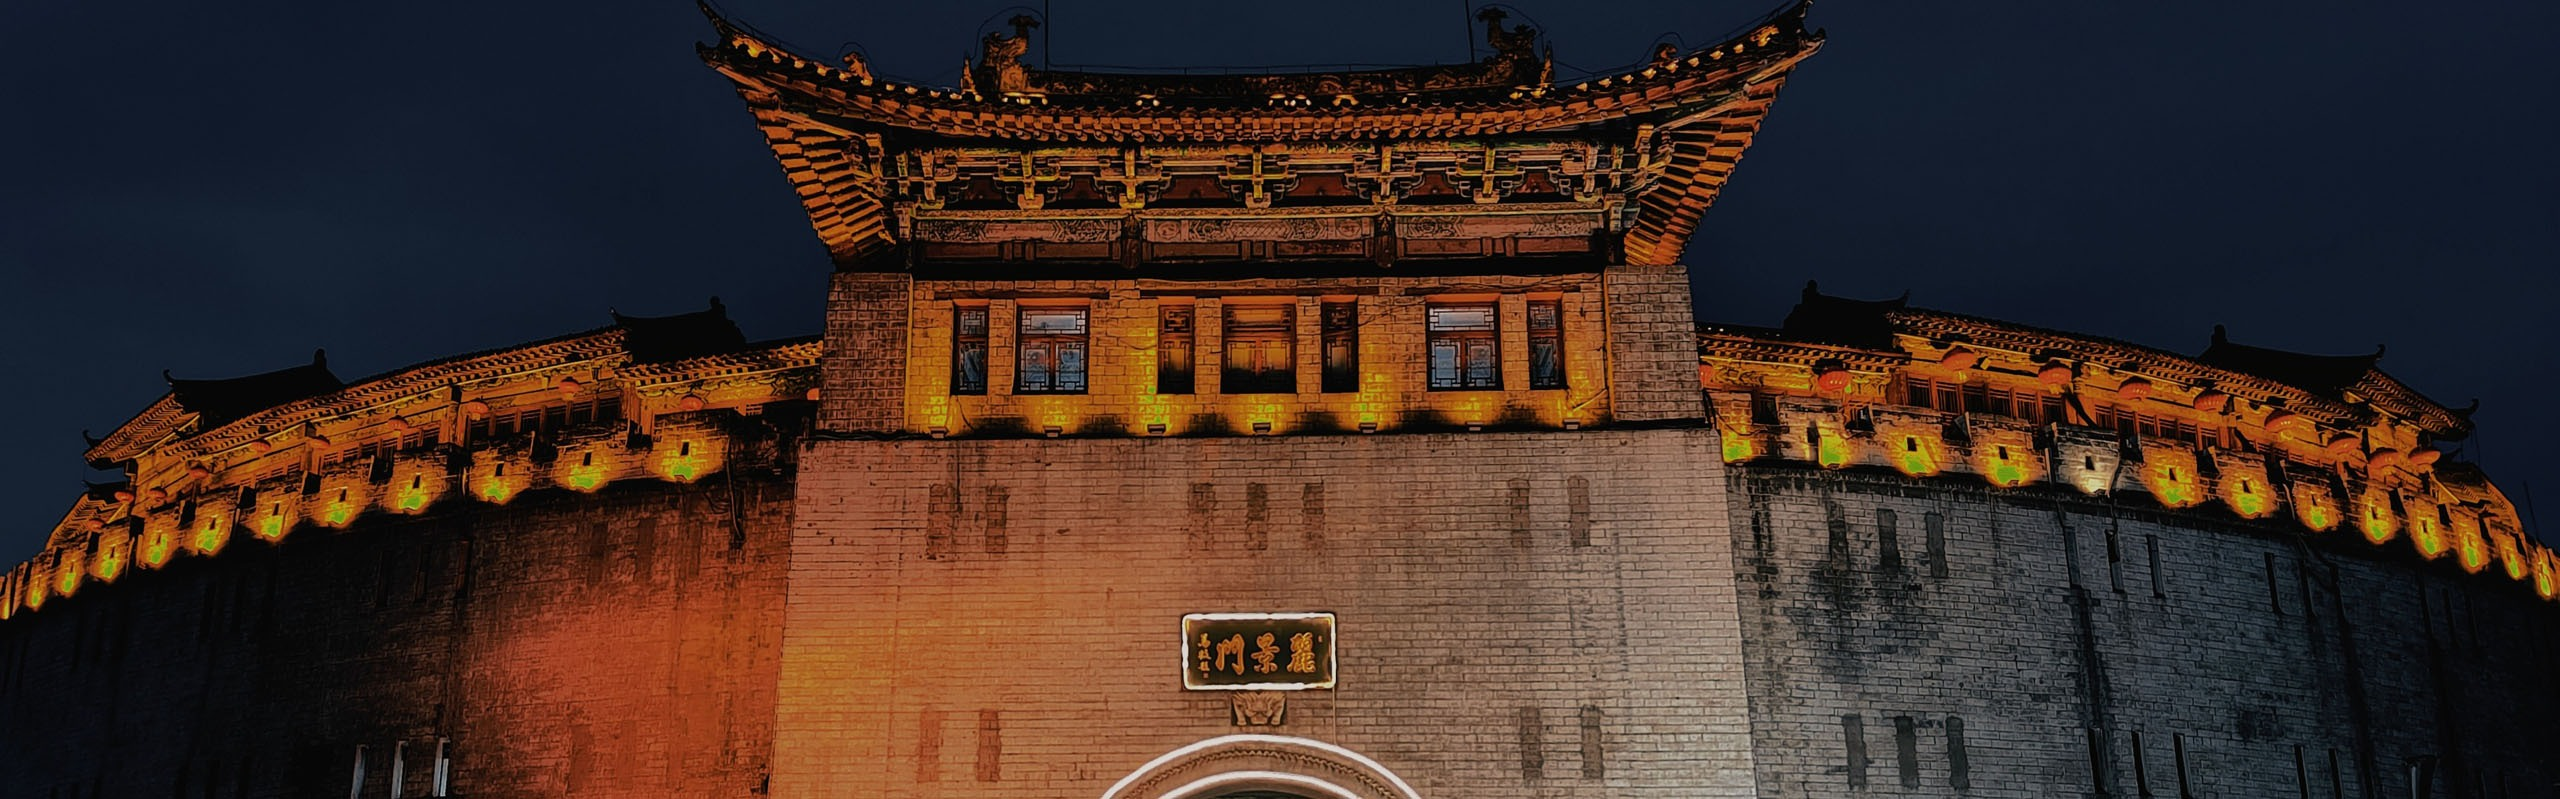 2-Day Luoyang and Shaolin Temple Tour from Beijing